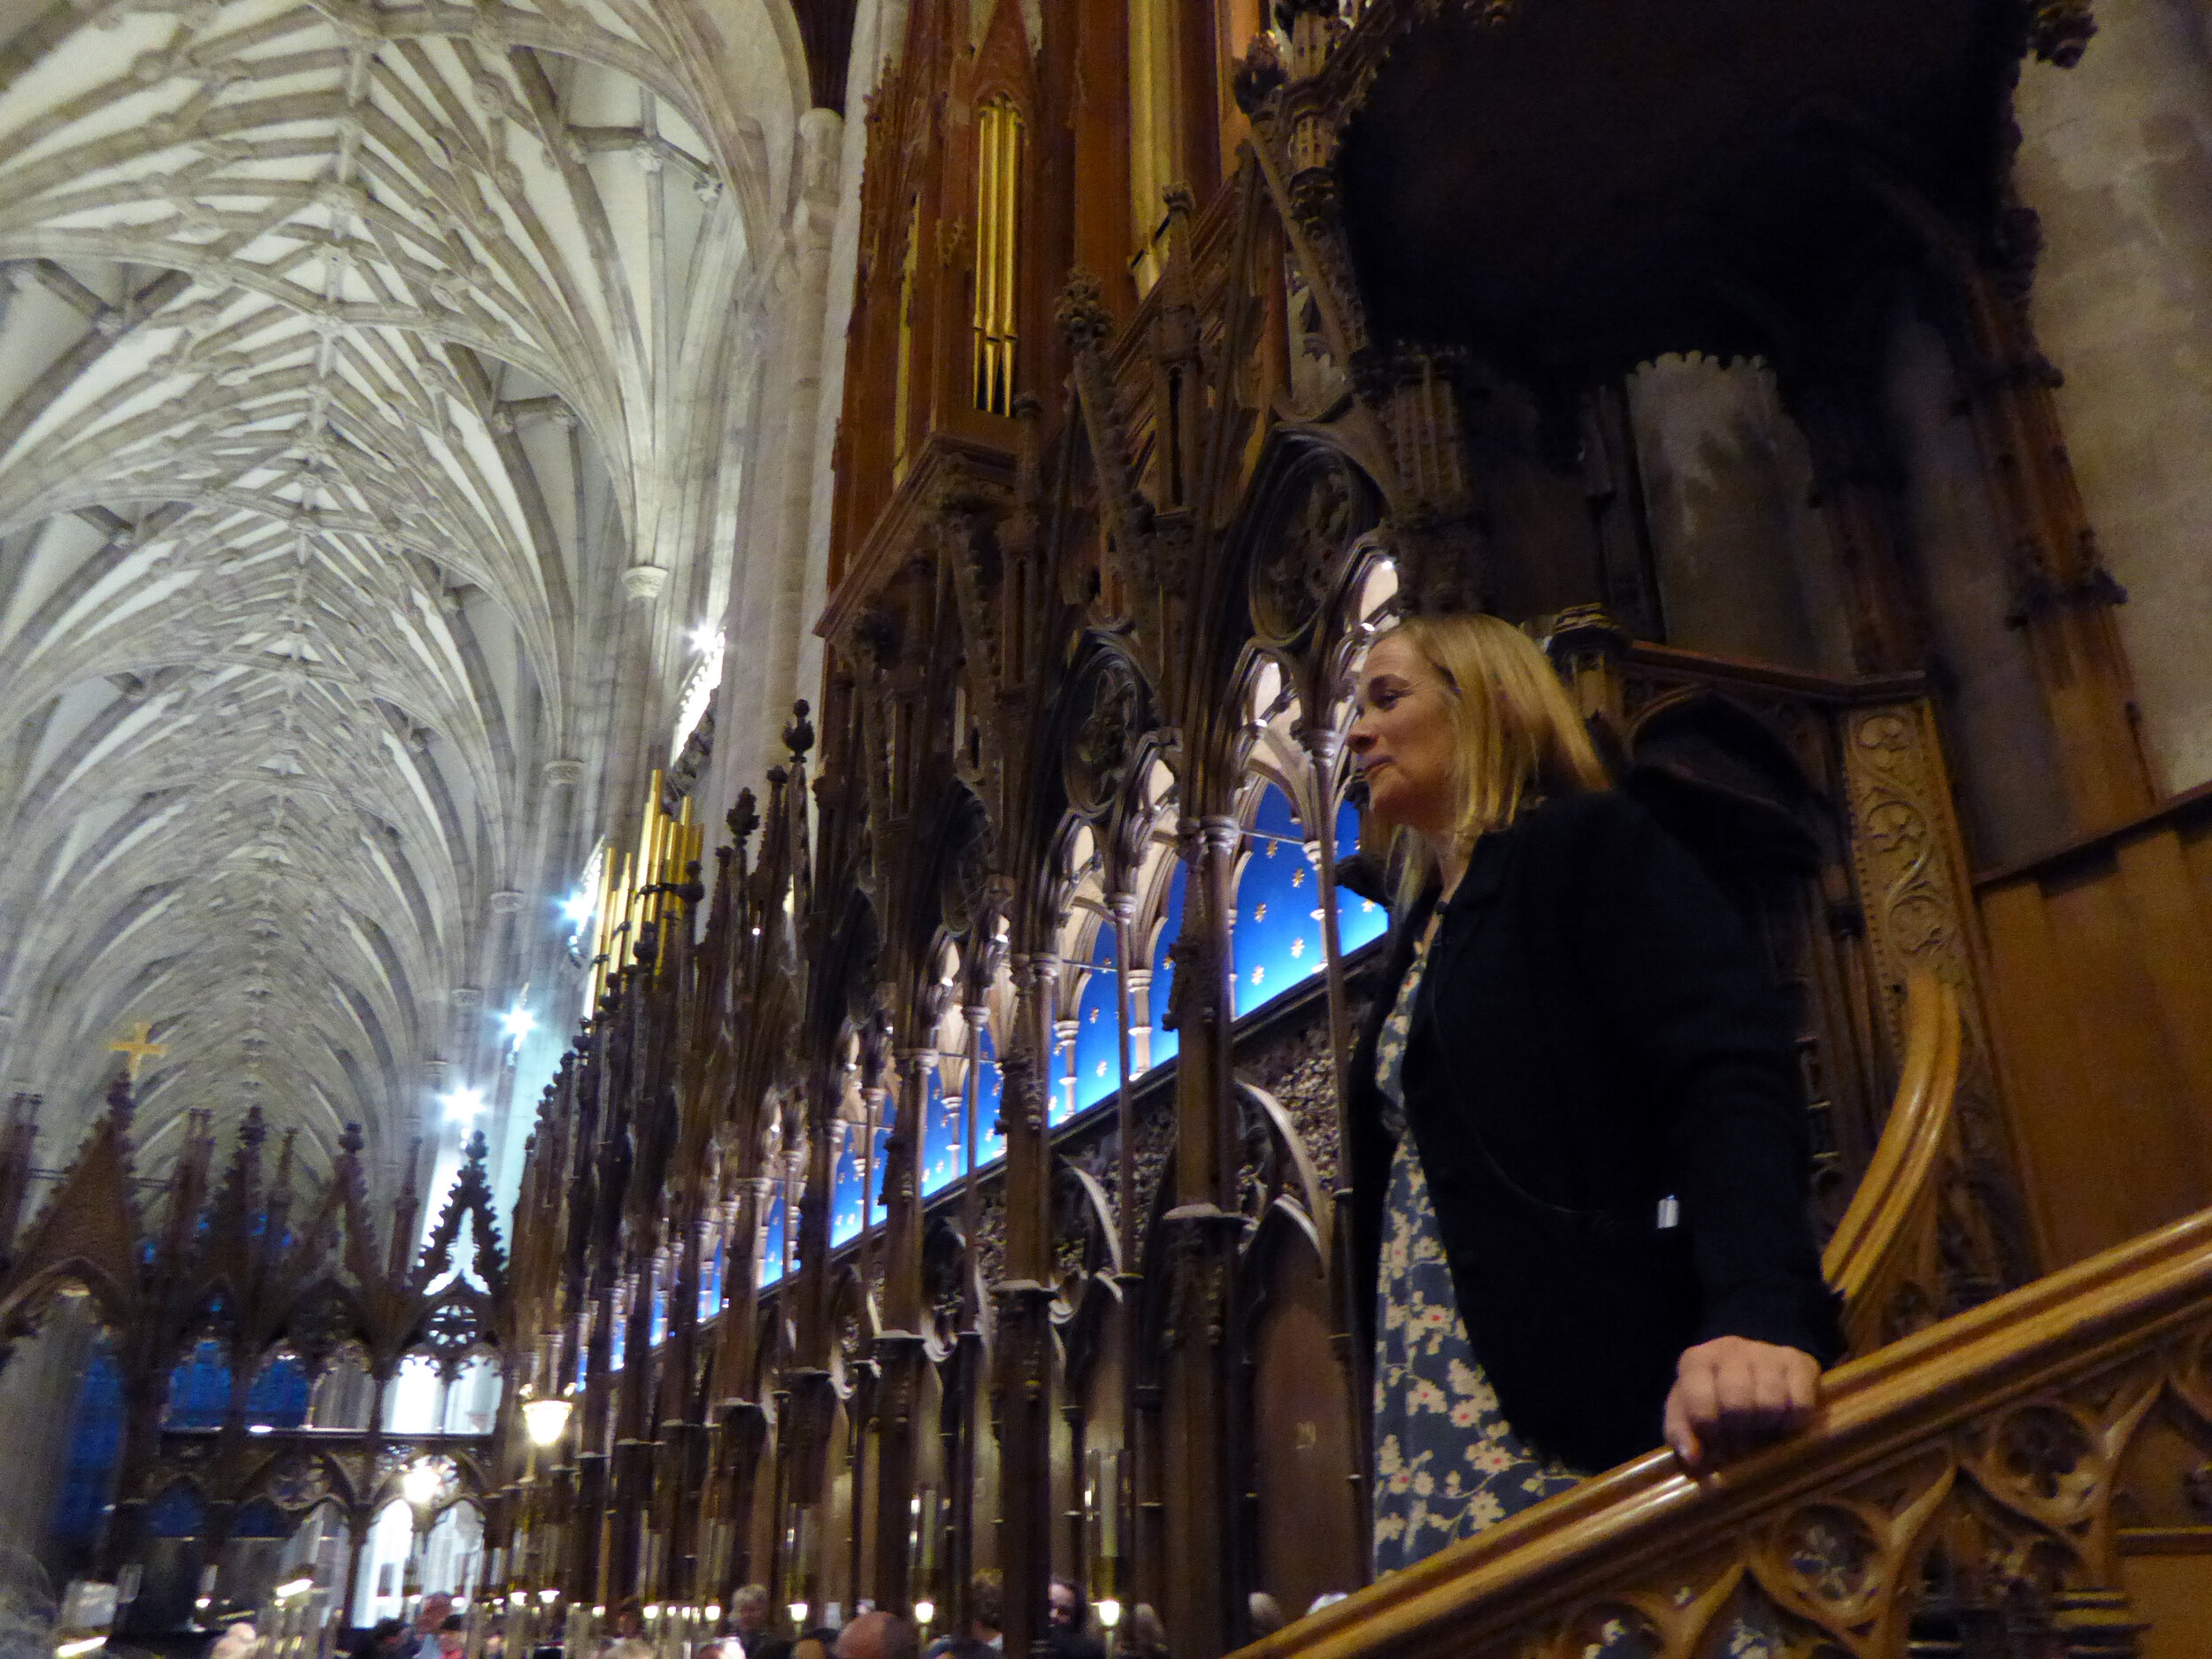 Tracy Chevalier at Winchester Cathedral photographed by Birgitta Huse